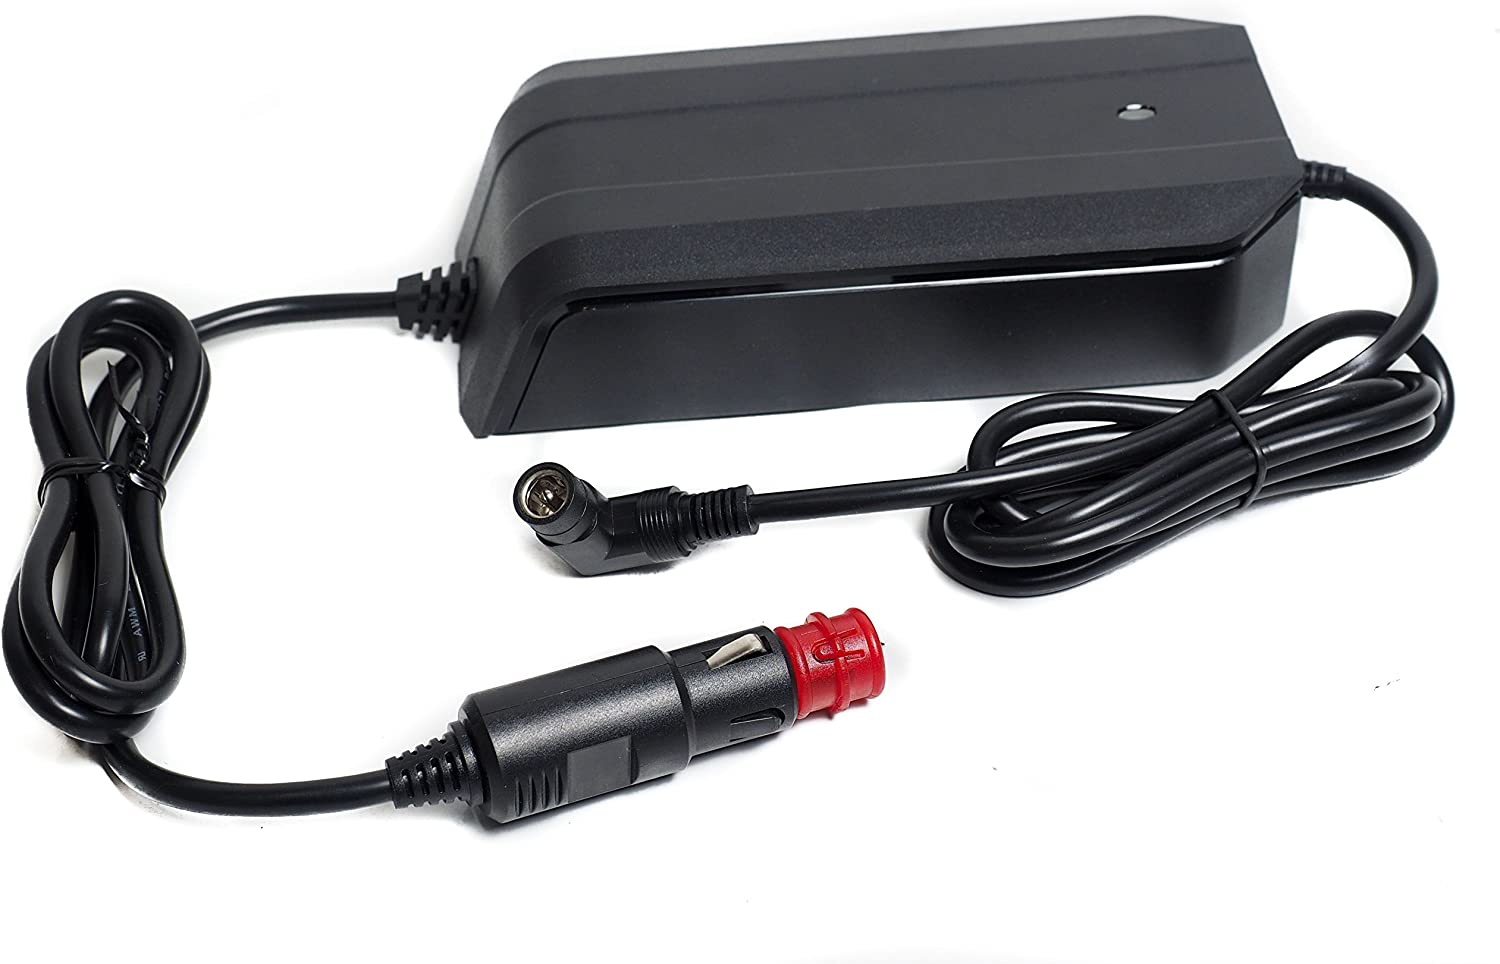 ACCUCELL TURNIGY Voiture Adaptateur Allume-Cigare pour Chargeurs de batteries-UK stock